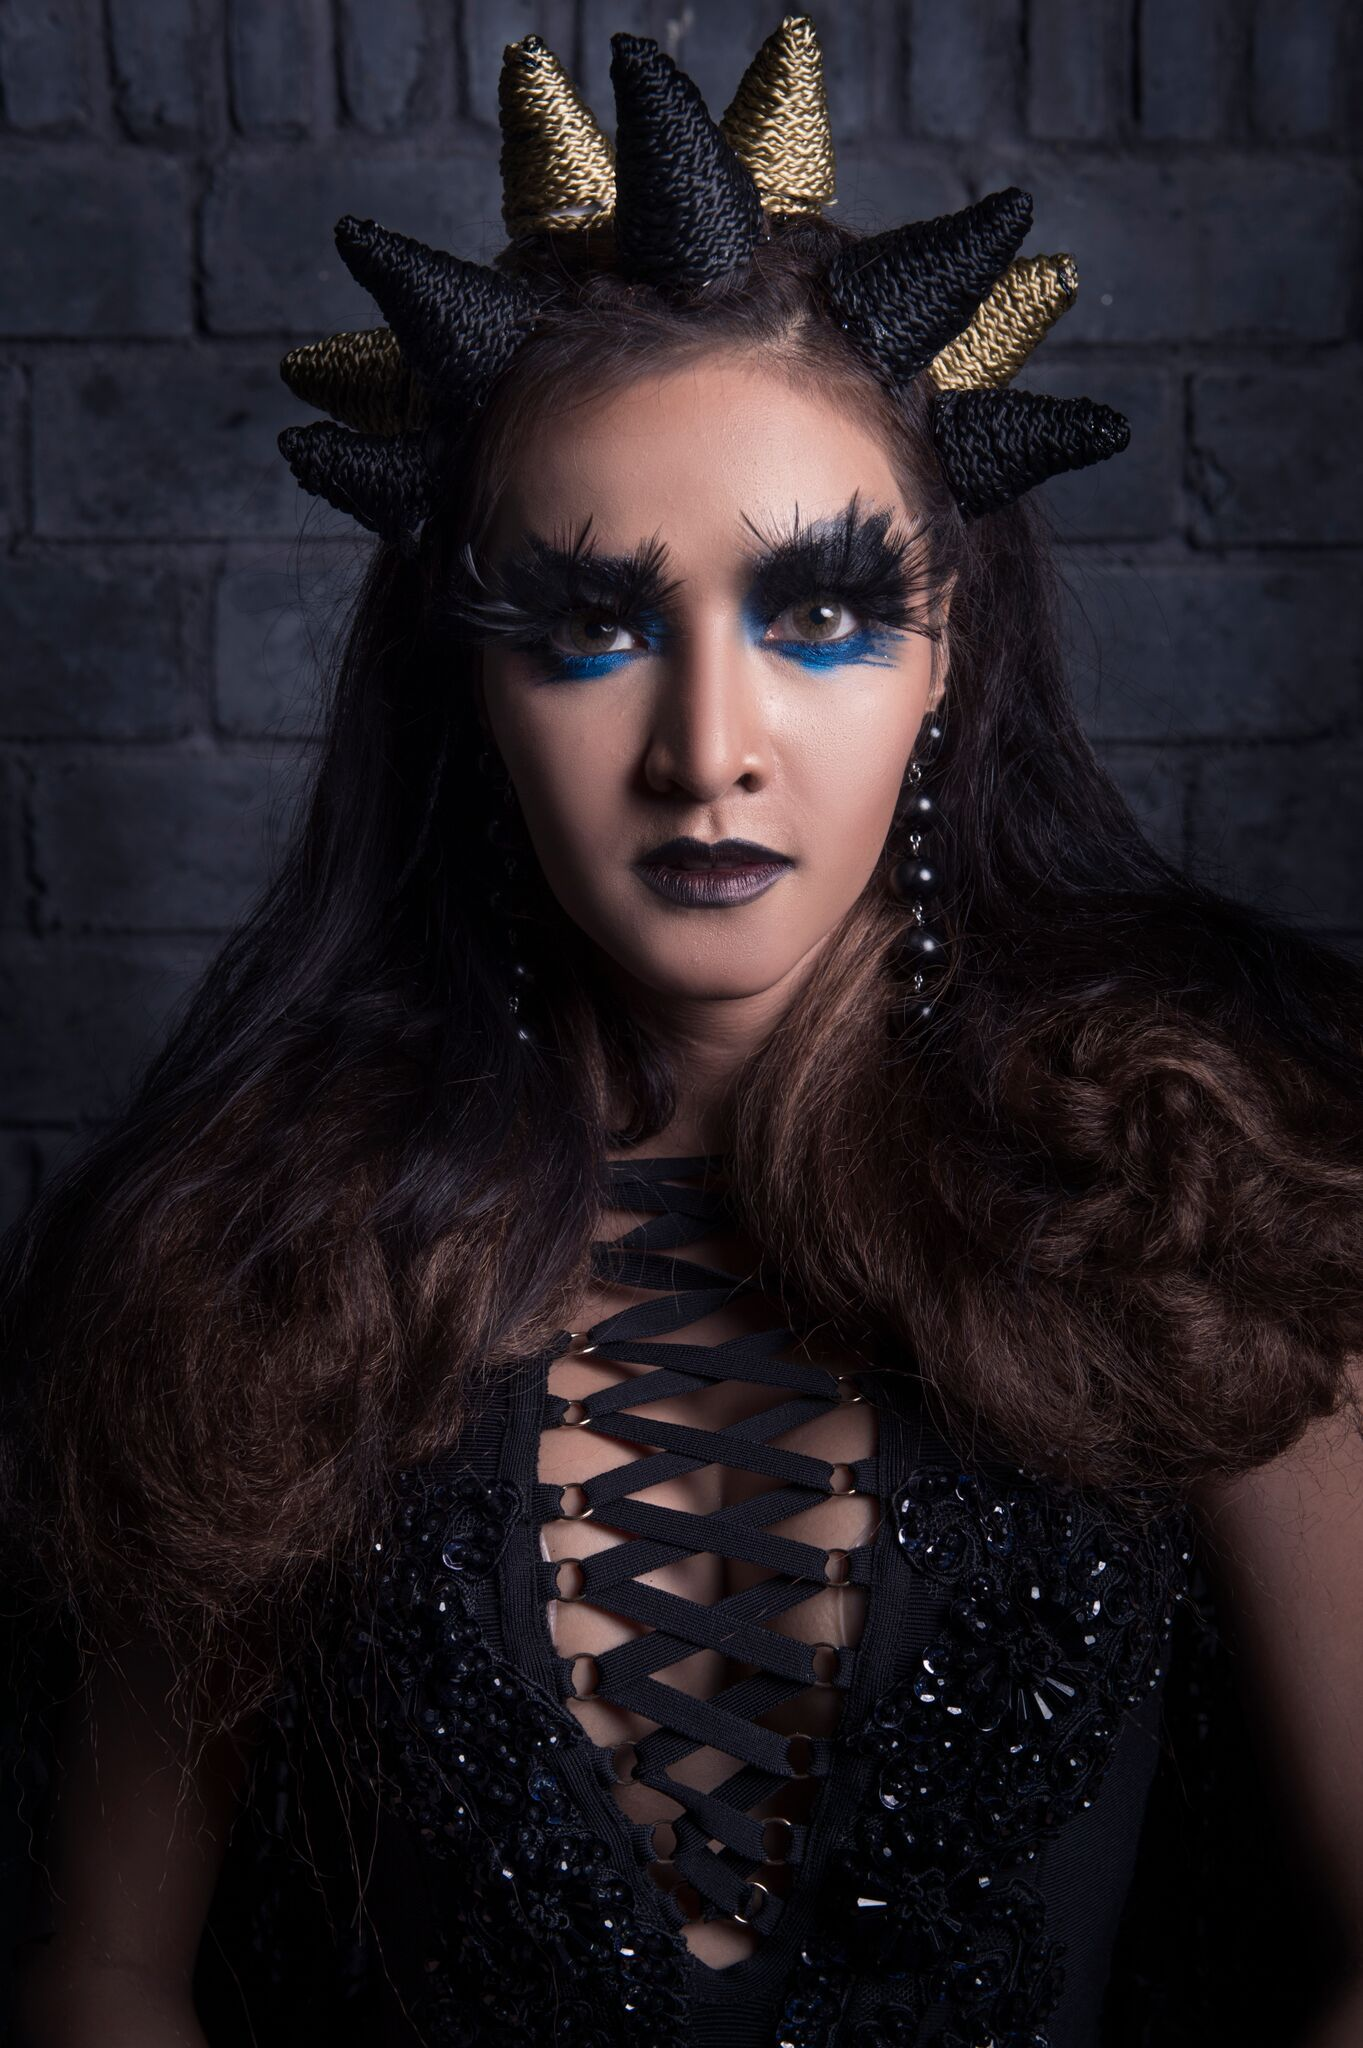 Witch Hairstyles Avant Garde Witch  Fashion Hairstyles  Pinterest  Fashion Hairstyles